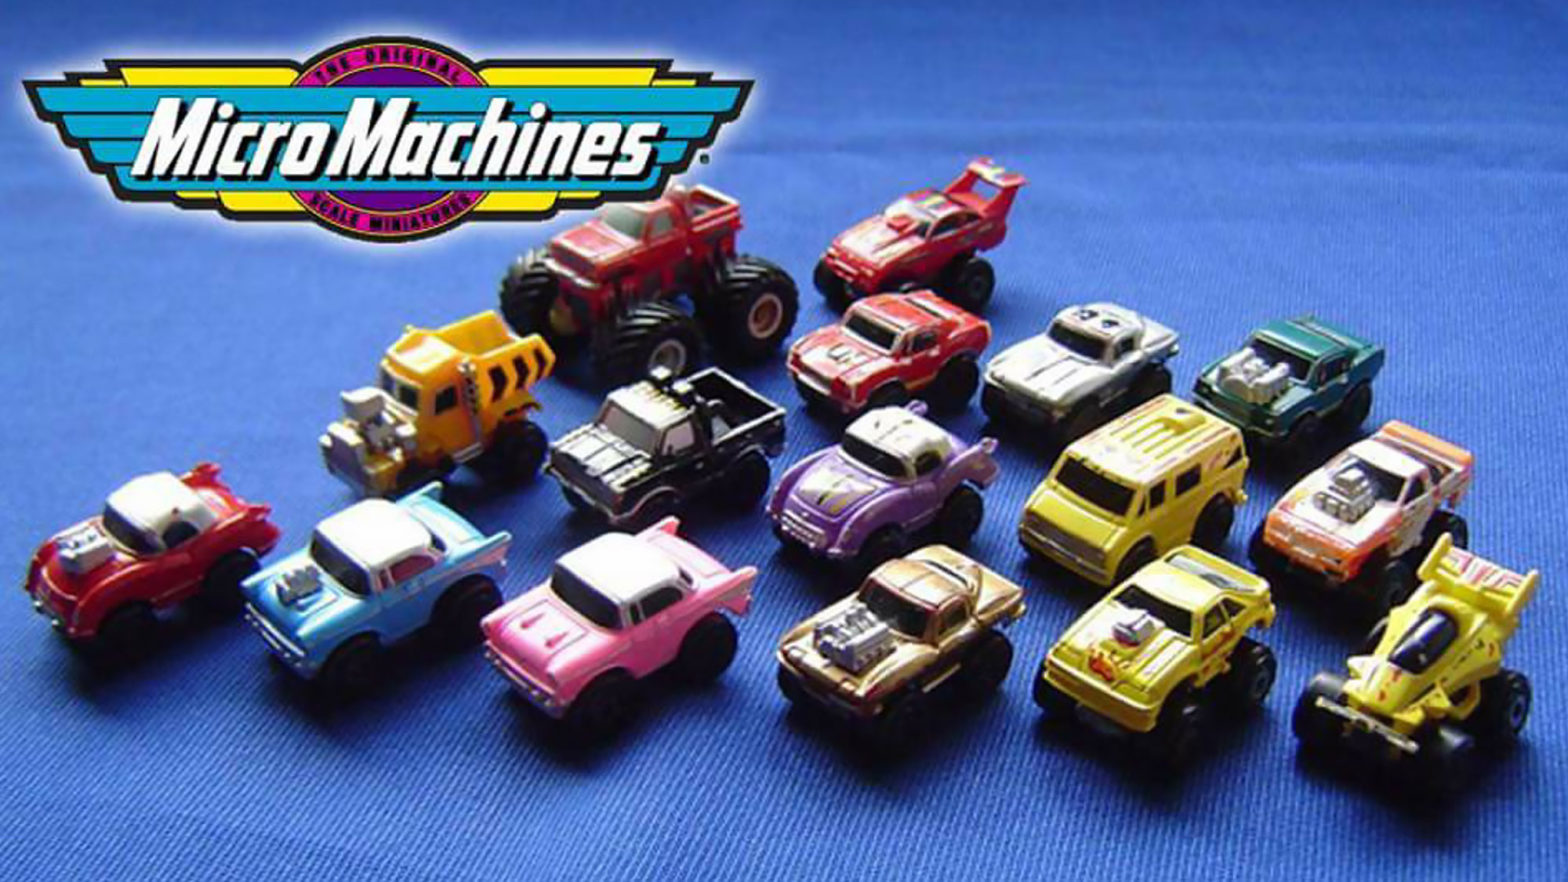 Micro Machines is Coming Back in 2020